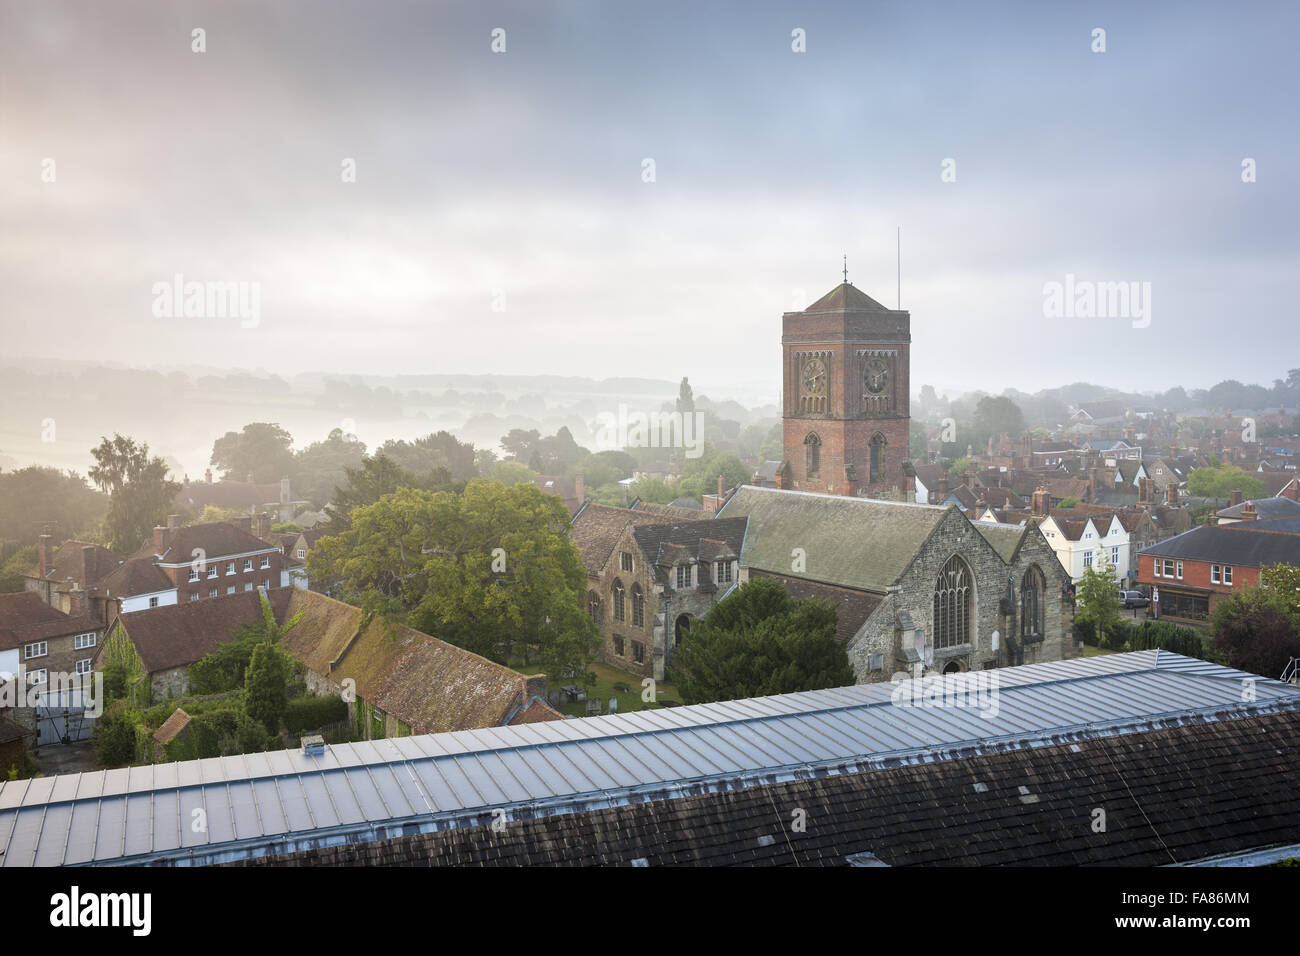 St. Mary's Church, Petworth, seen from the roof of the house at Petworth House and Park, West Sussex. The deer - Stock Image